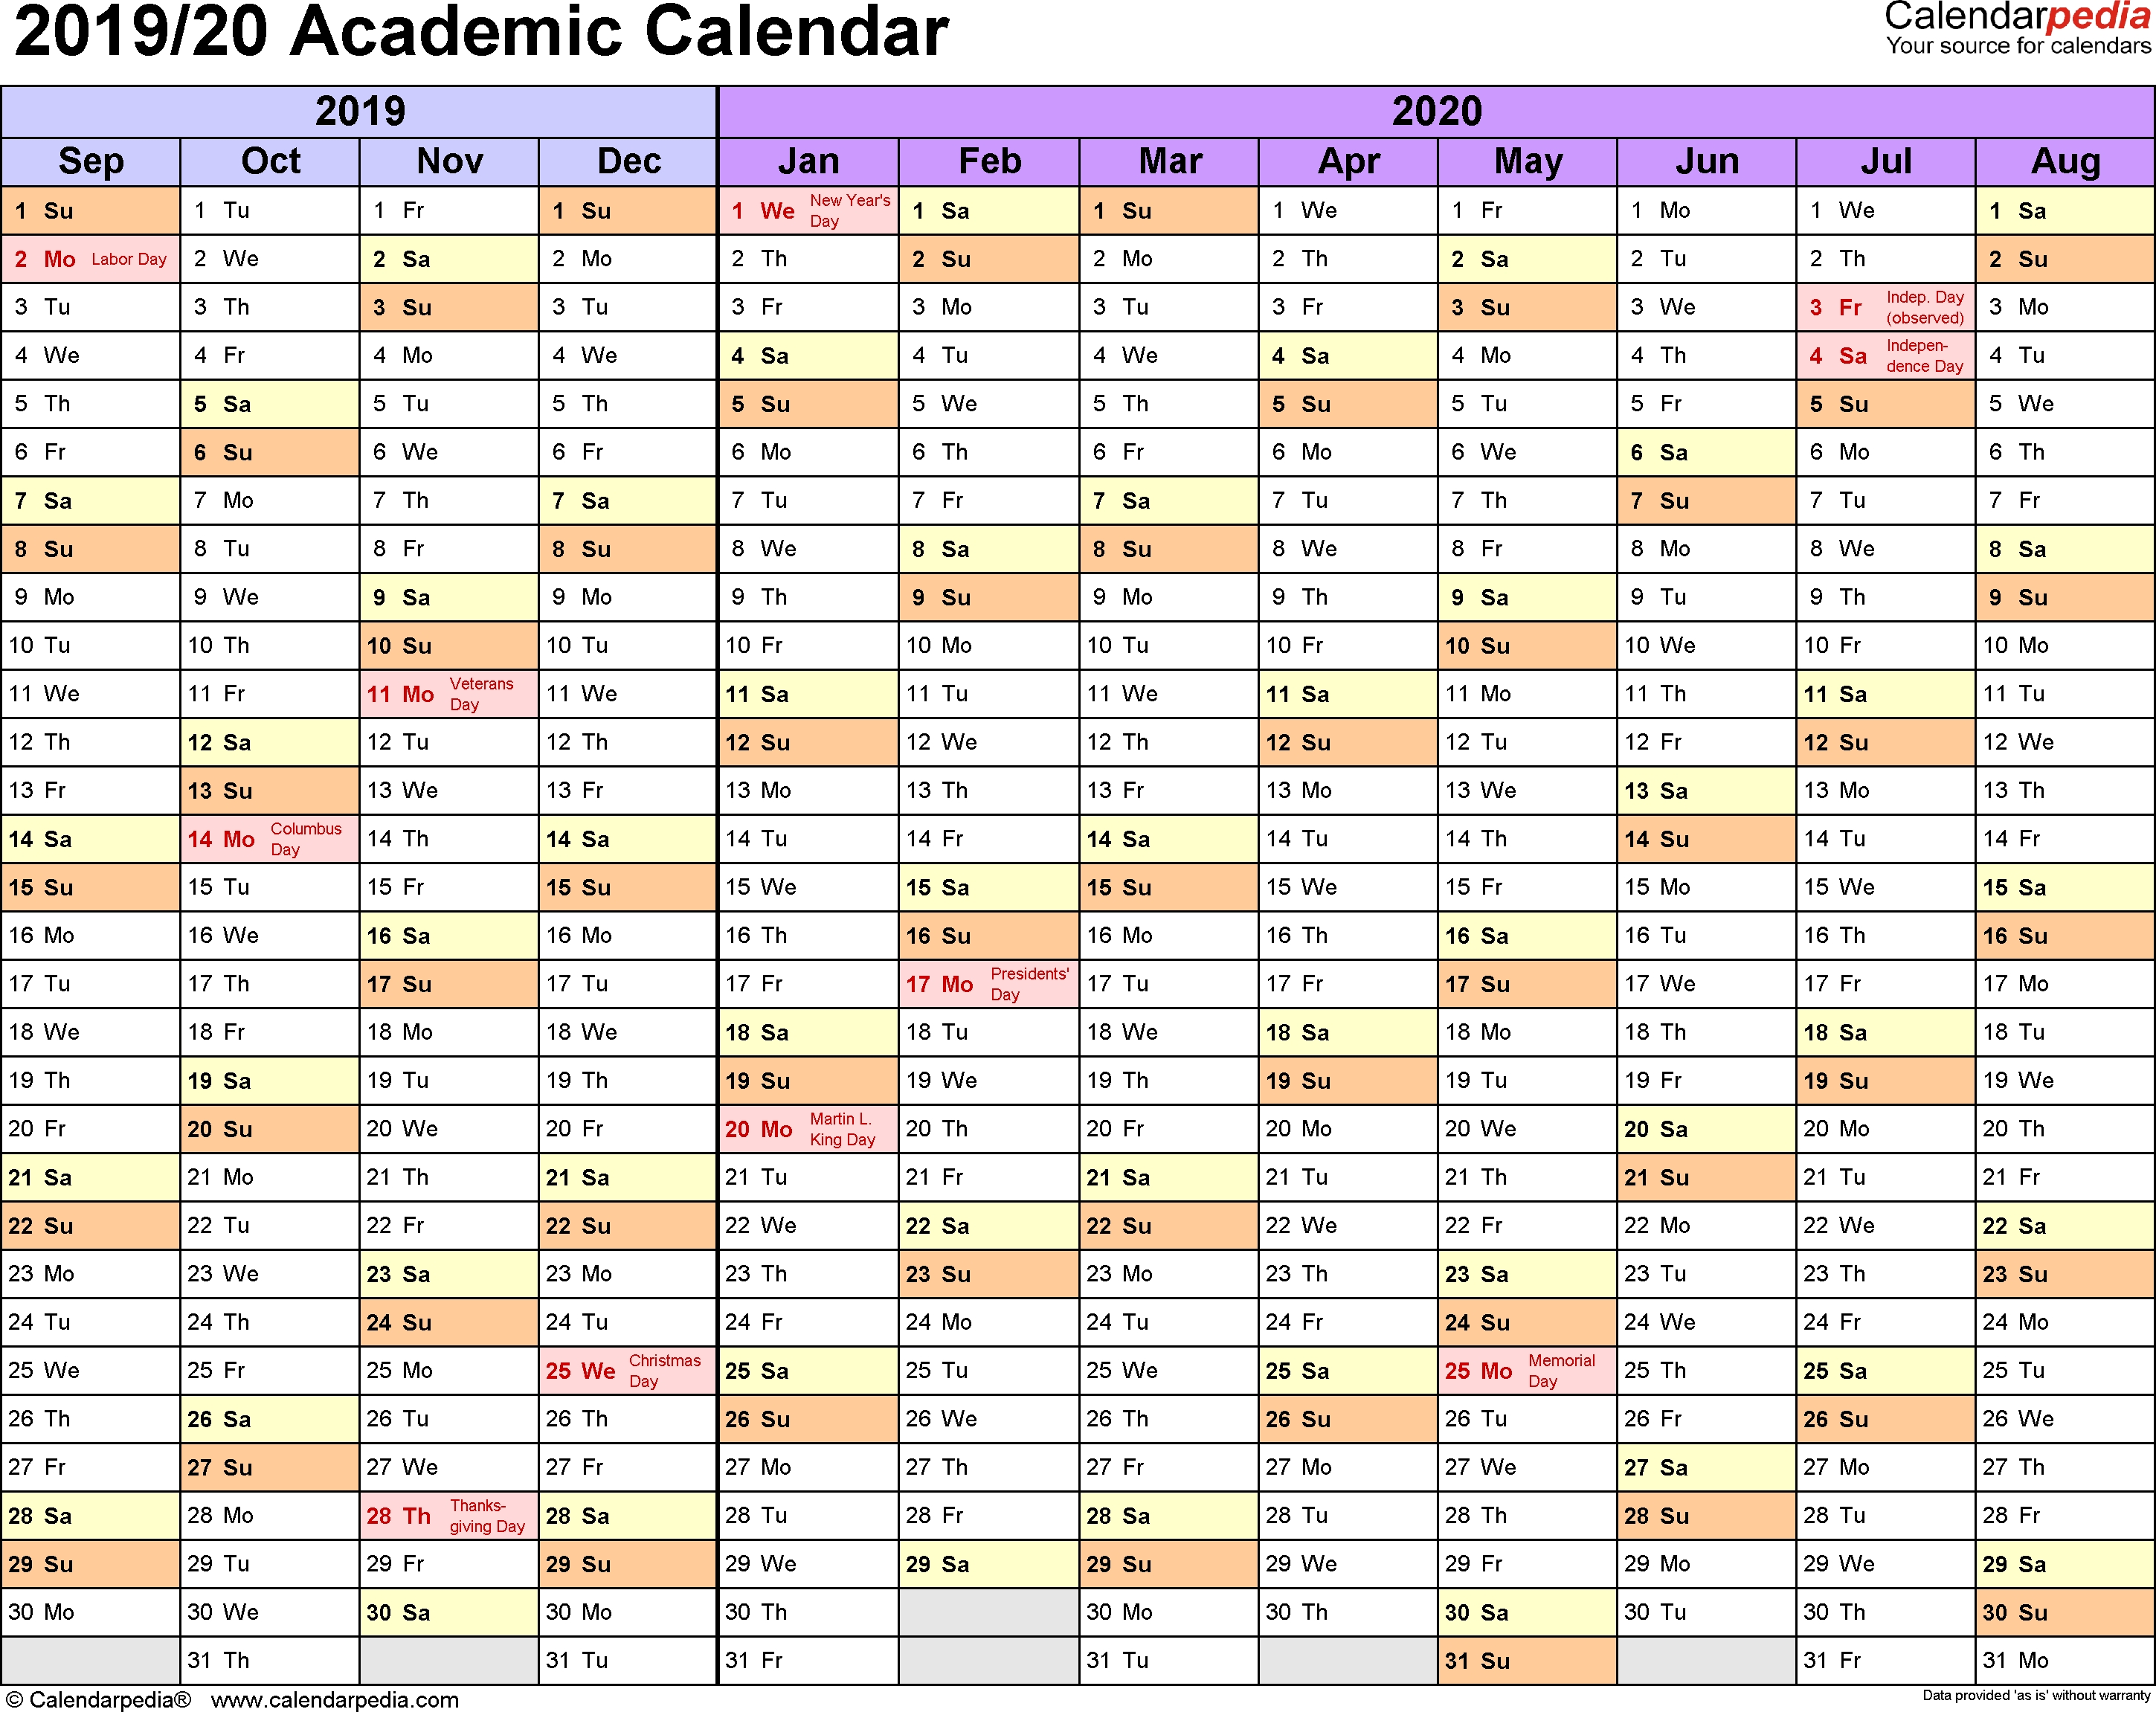 Academic Calendars 2019/2020 - Free Printable Excel Templates in Calendar 2019 2020 Xls